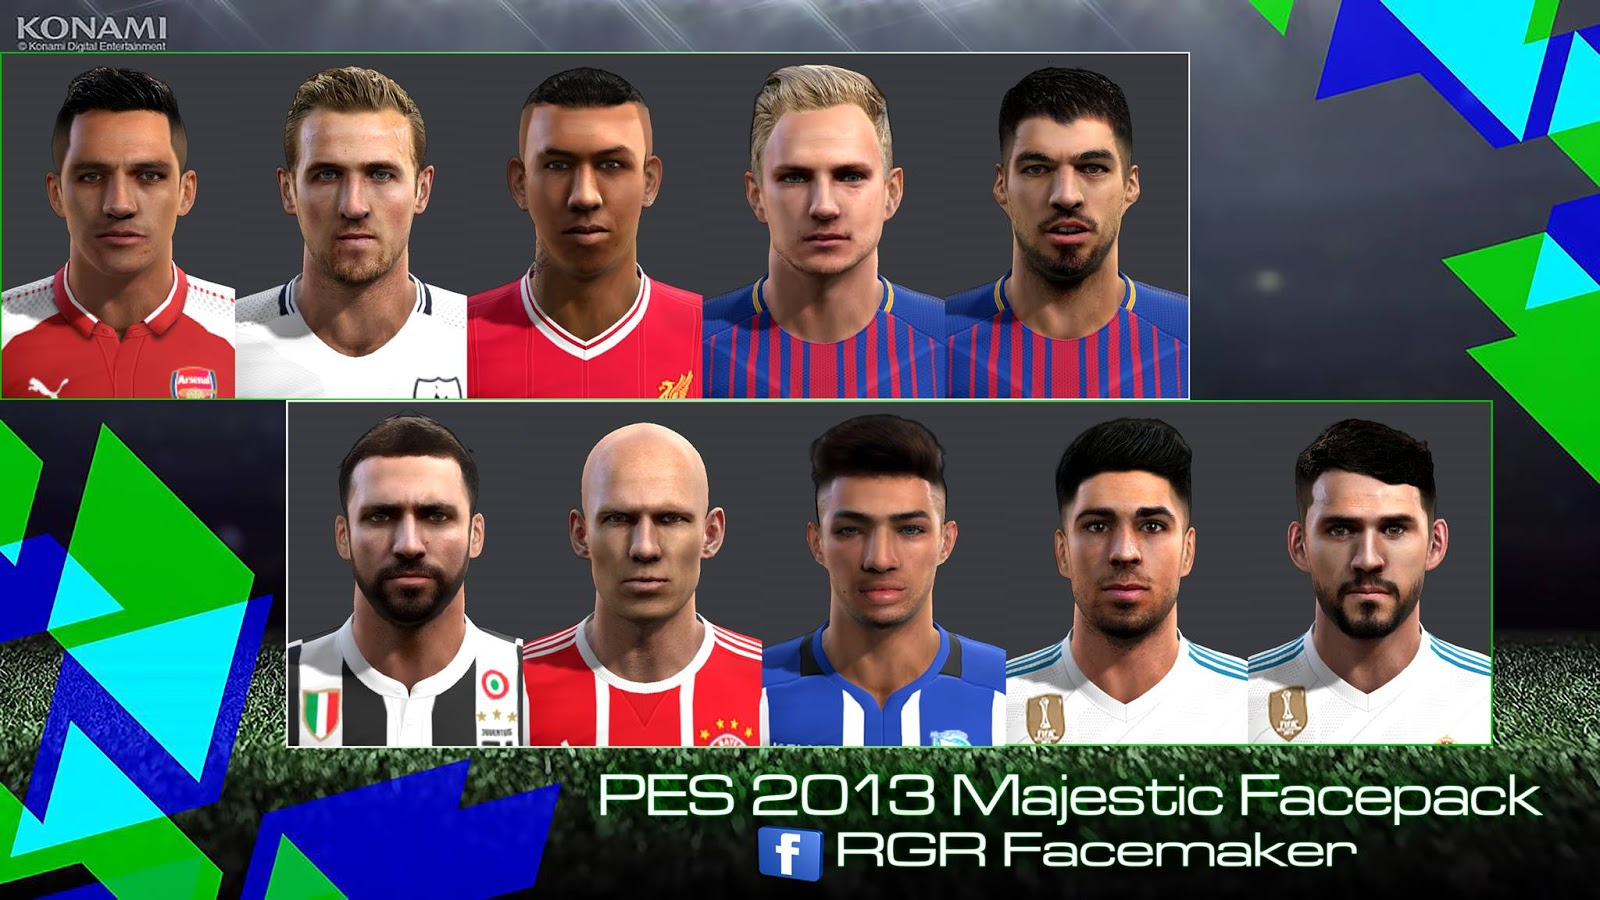 PES 2013 Majestic Facepack by Rgr Facemaker